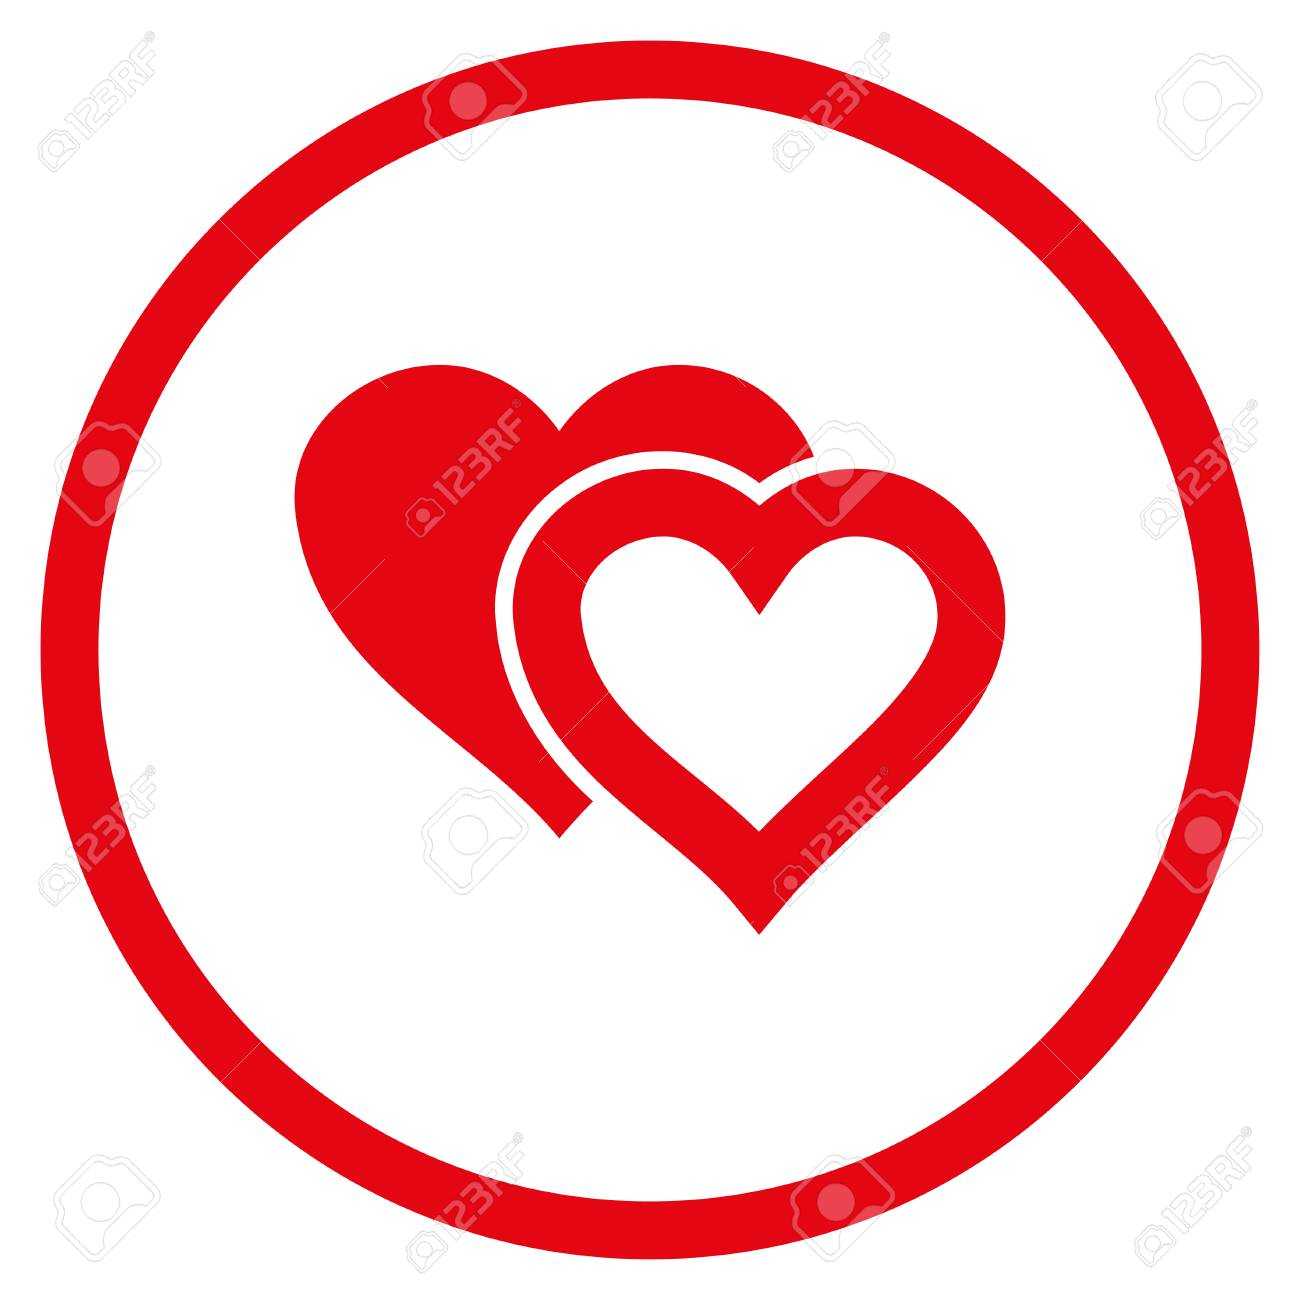 Love hearts rounded icon vector illustration style is flat iconic love hearts rounded icon vector illustration style is flat iconic symbol inside circle red buycottarizona